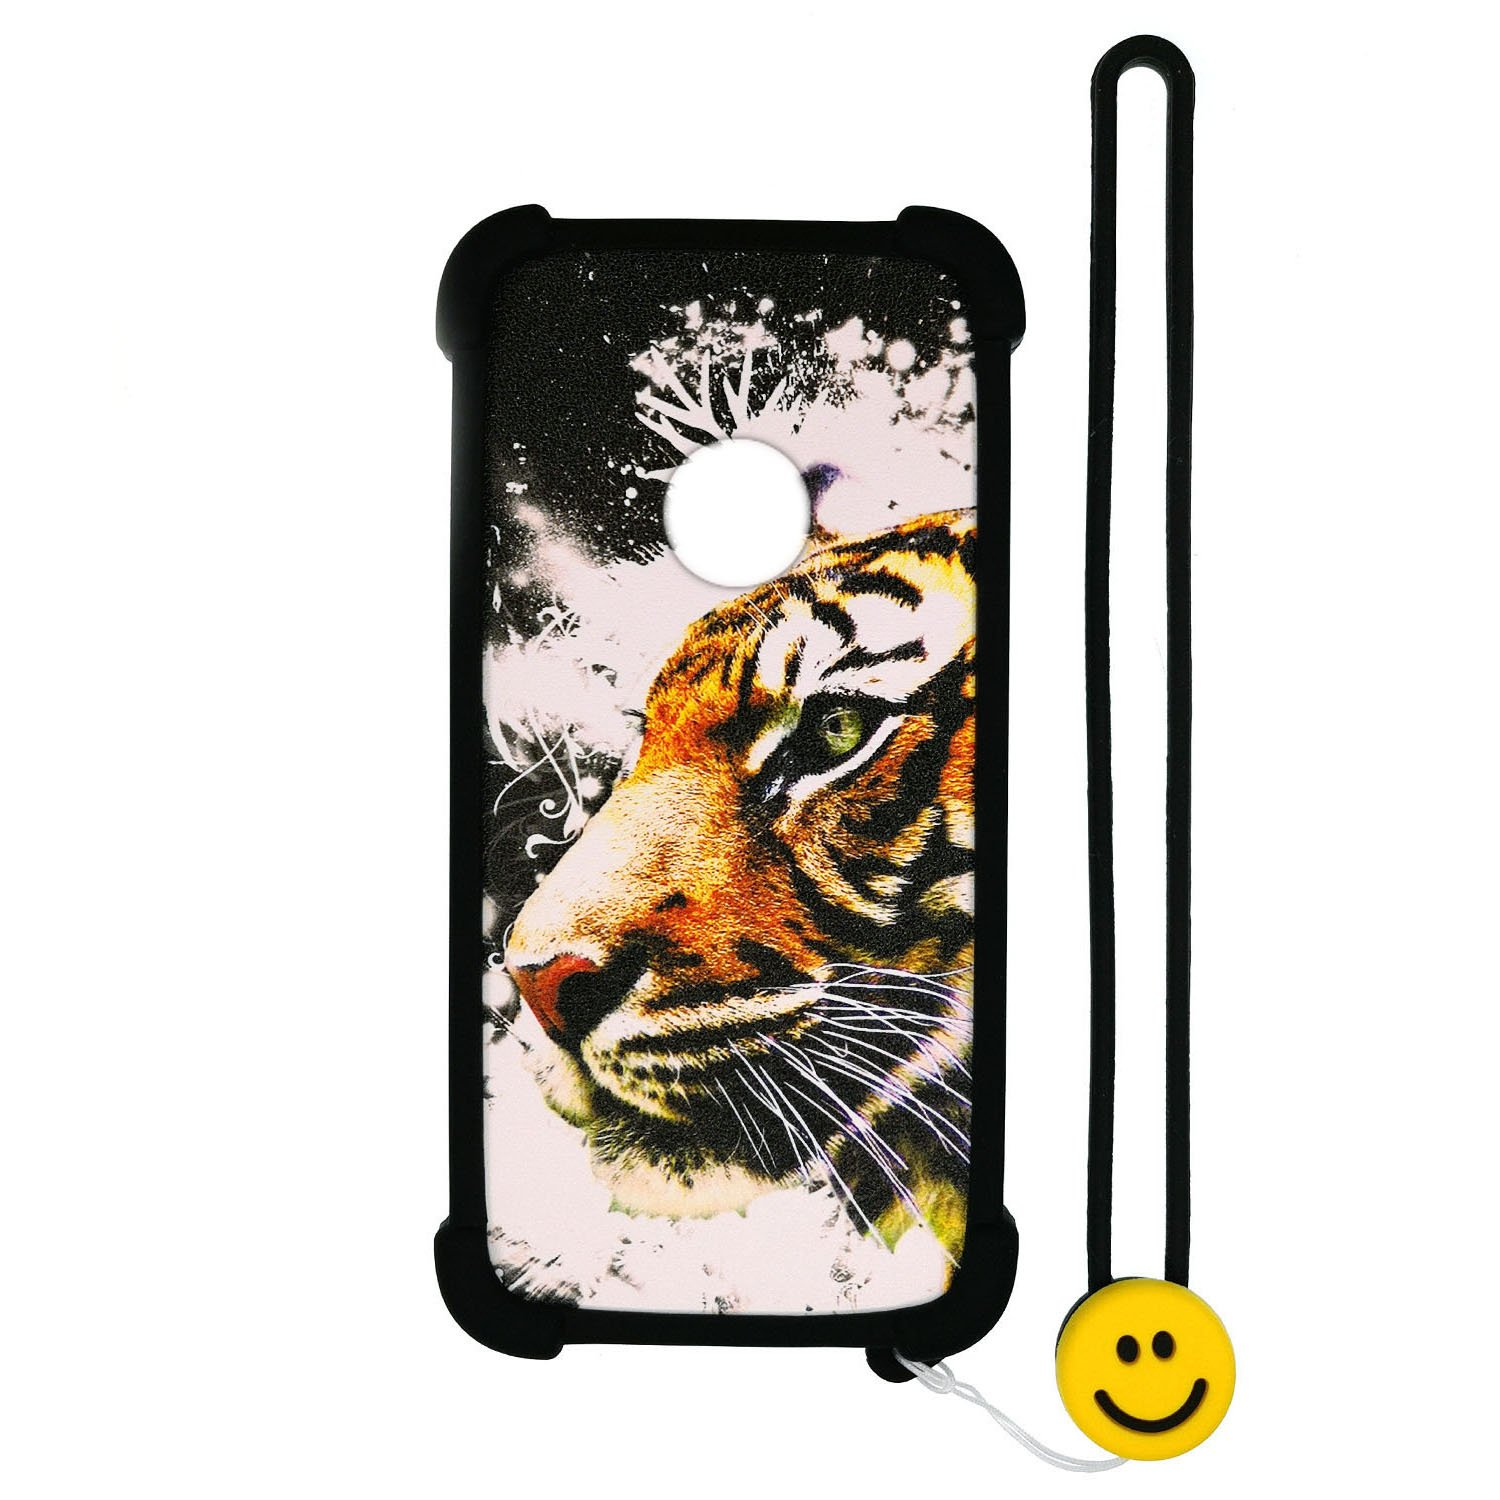 Case for ZTE N818S QLink Wireless Case Silicone Border + PC Hard backplane Stand Cover Luminous Effect LH